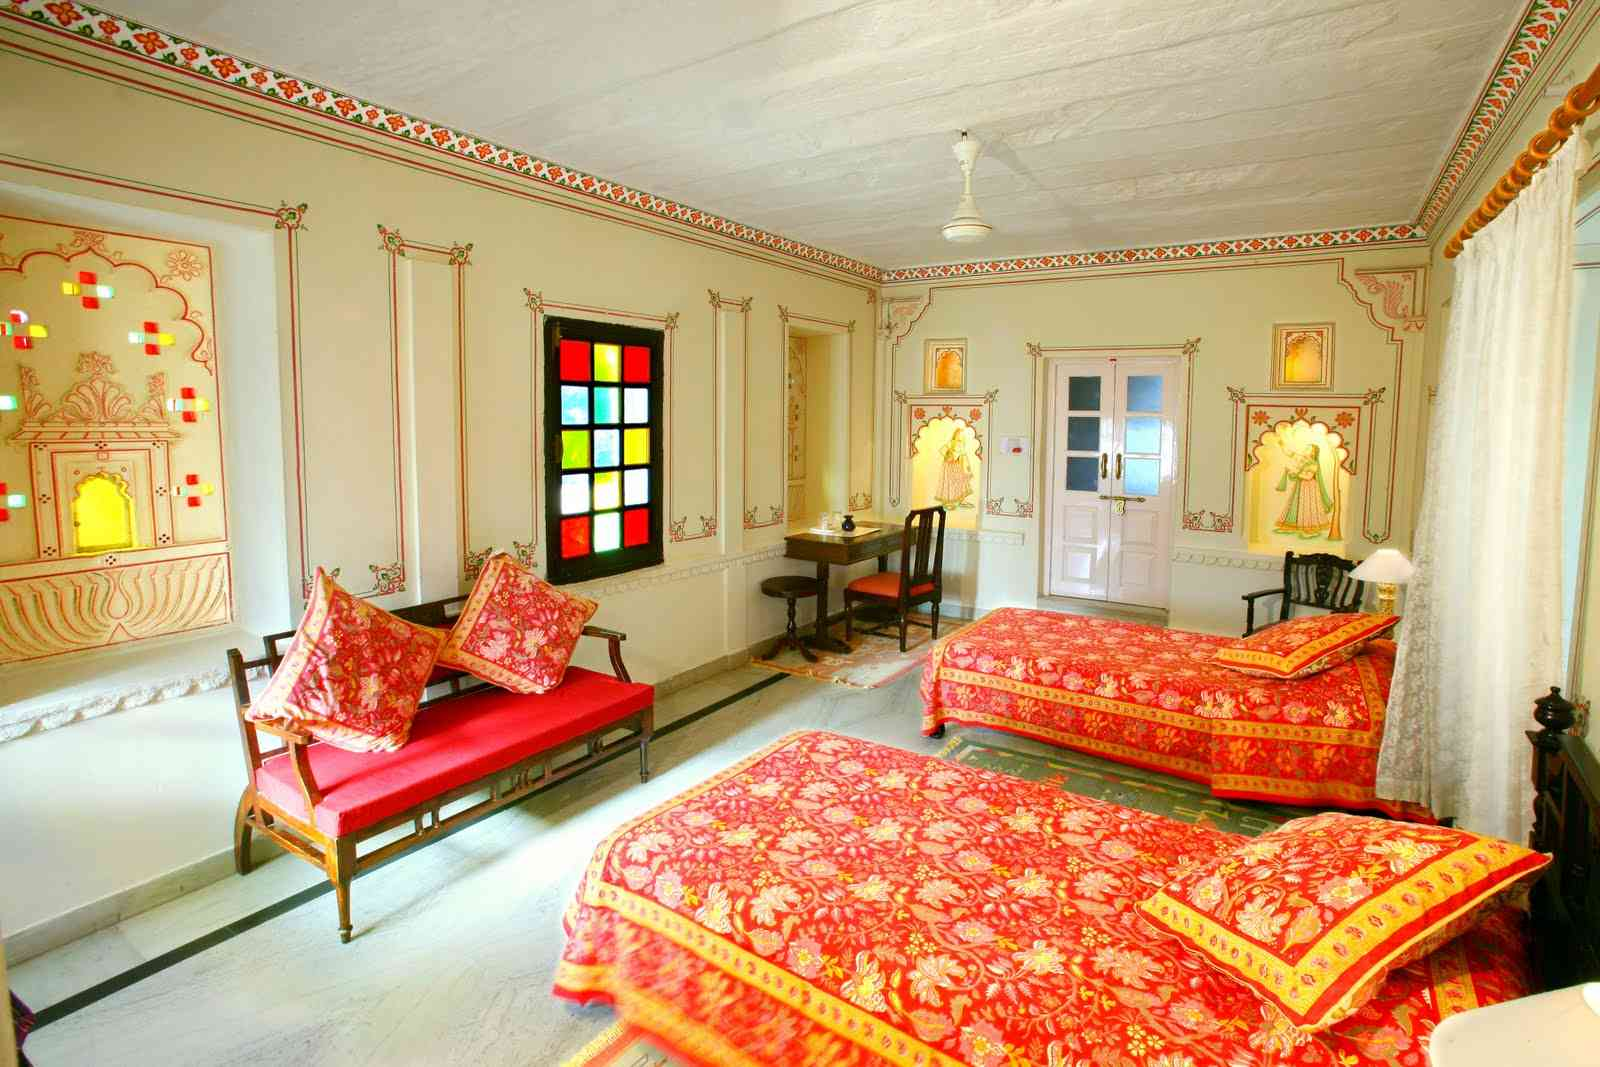 Rajasthani style interior decoration ideas to furnish your home for Interior designs for bedrooms indian style